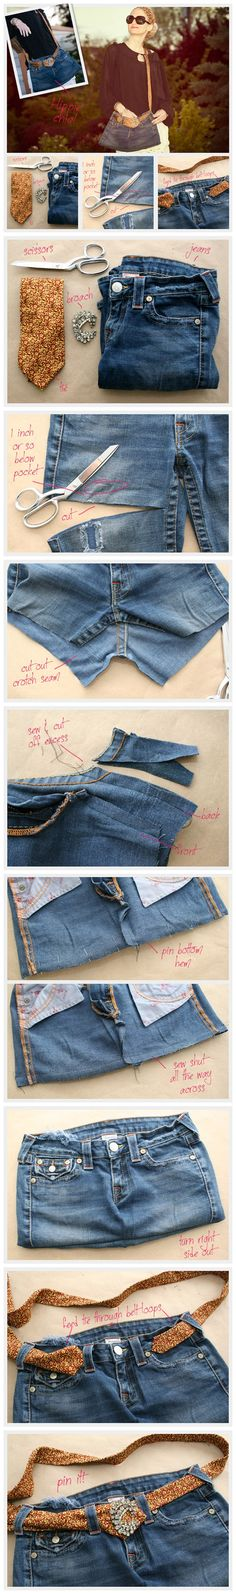 DIY Recycled Jeans Bag Tutorial